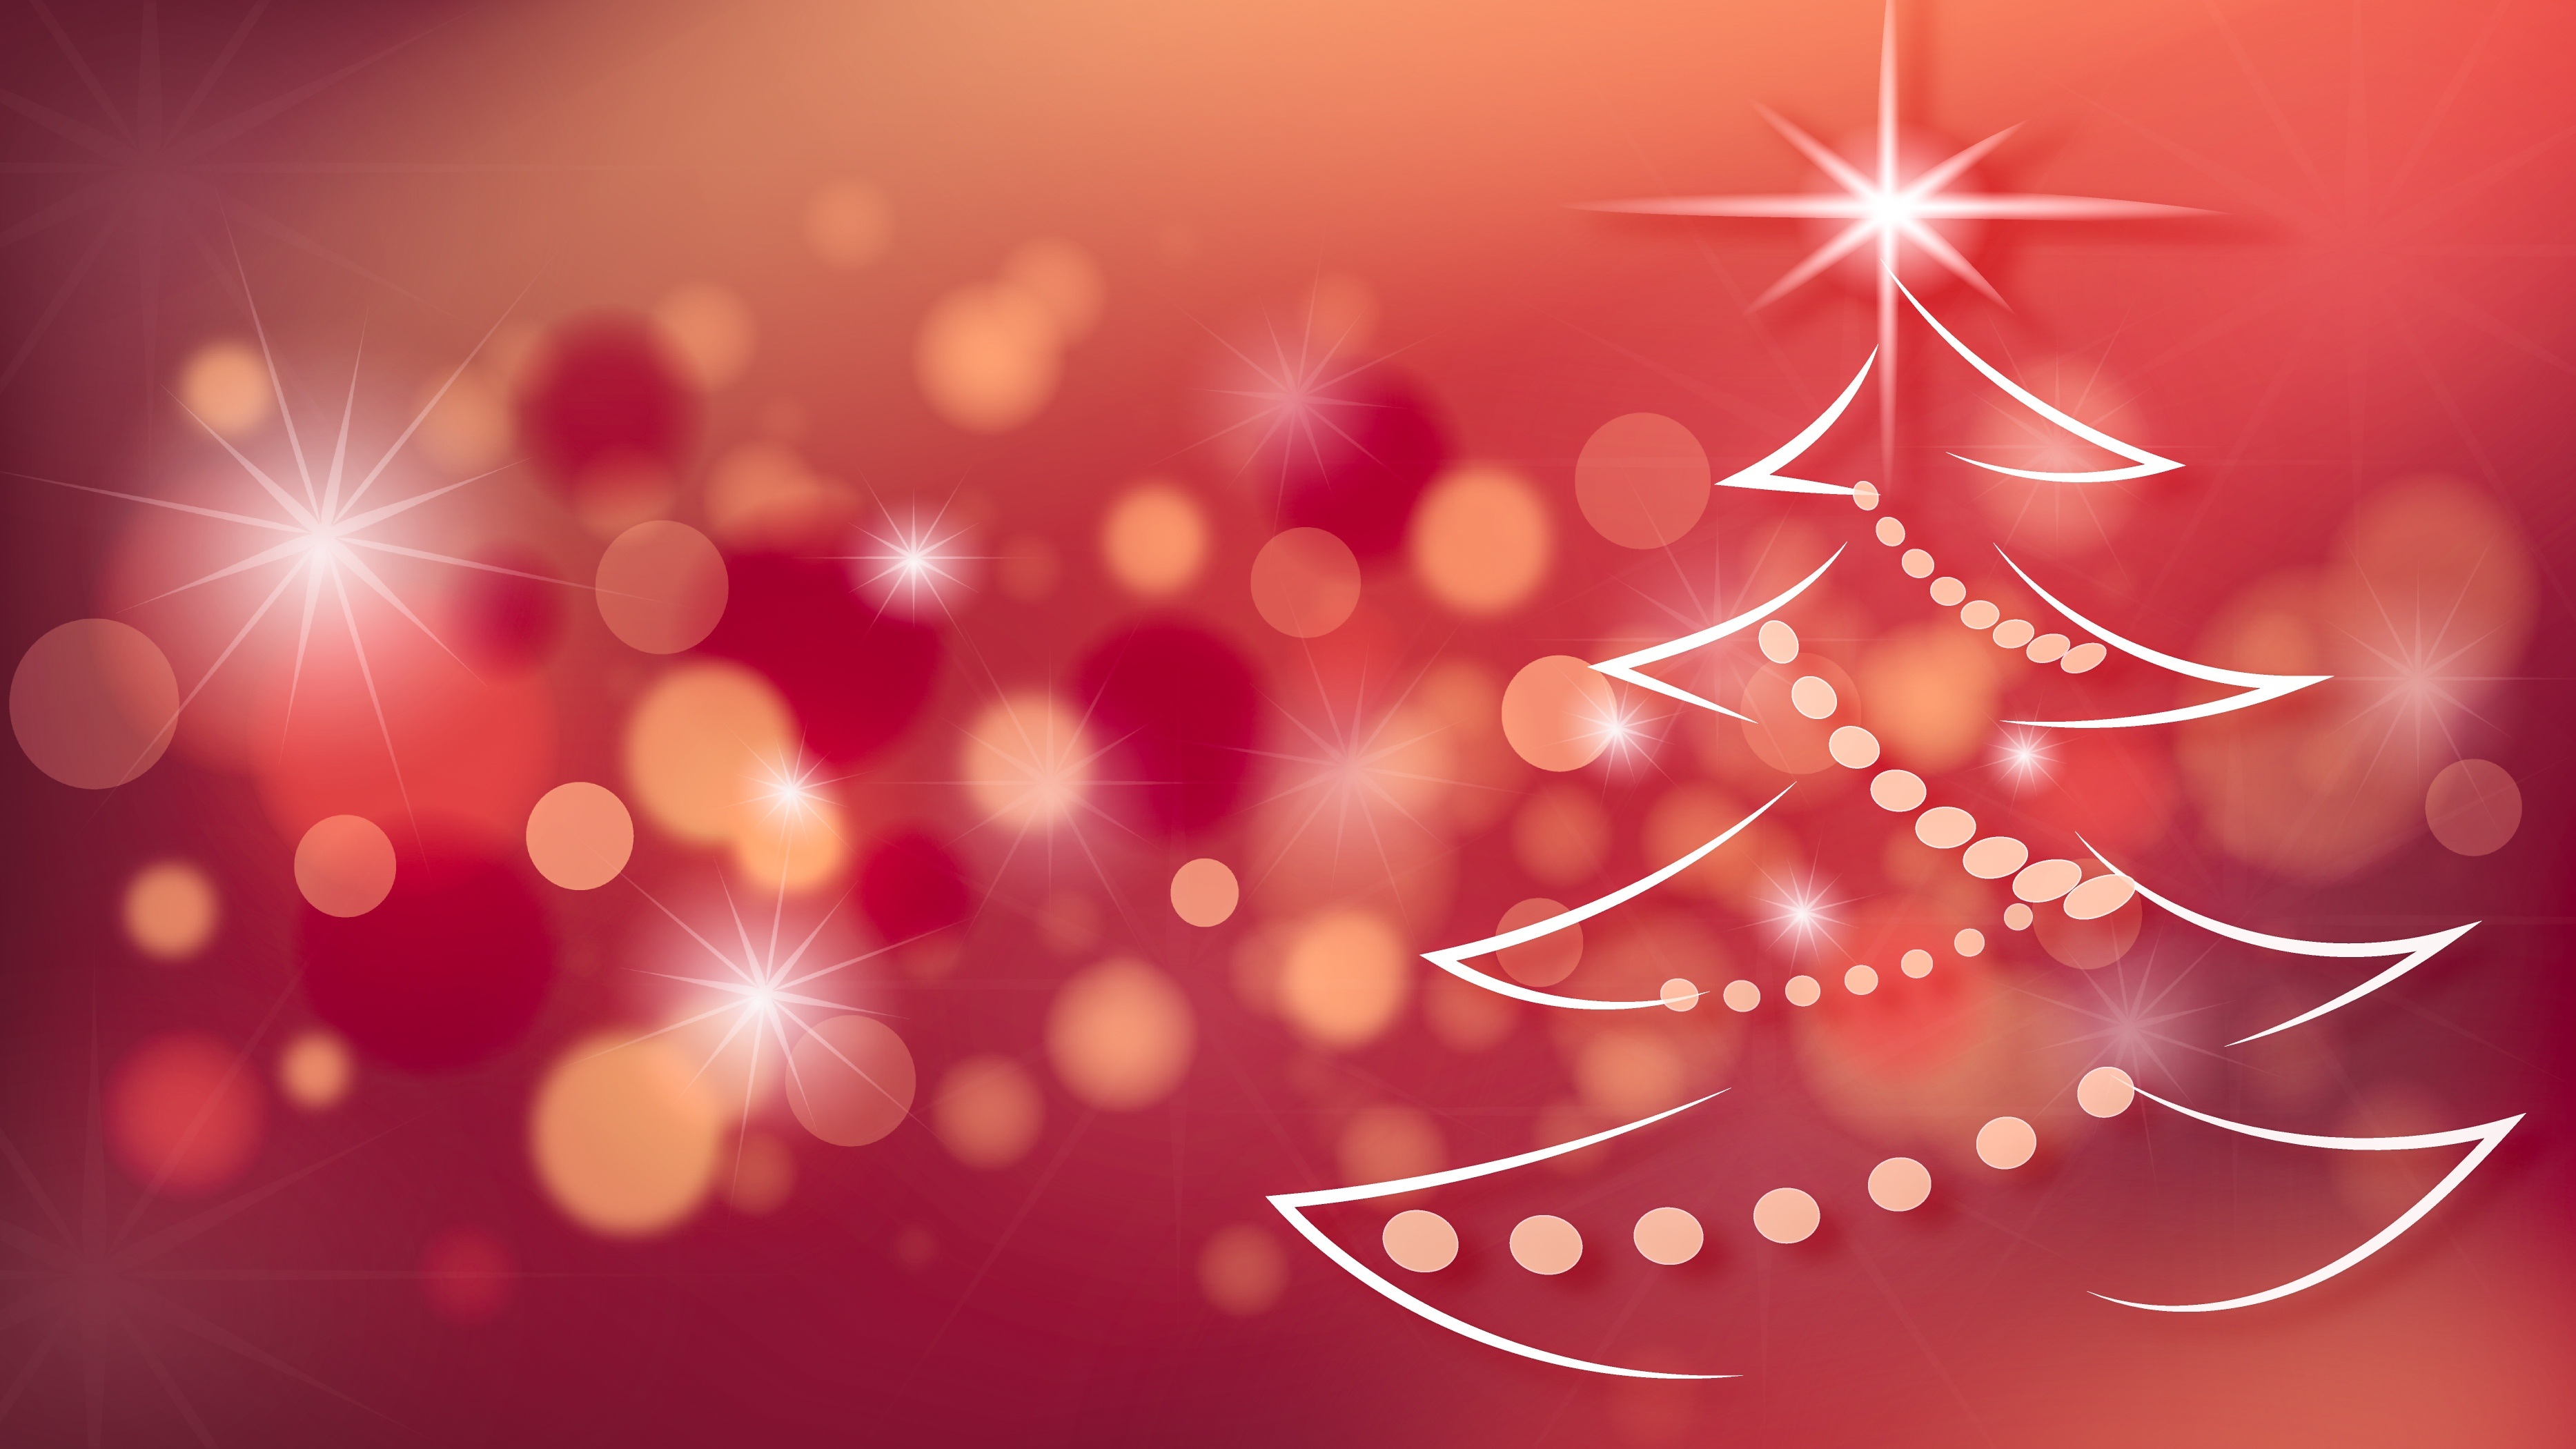 christmas background 4k, hd celebrations, 4k wallpapers, images